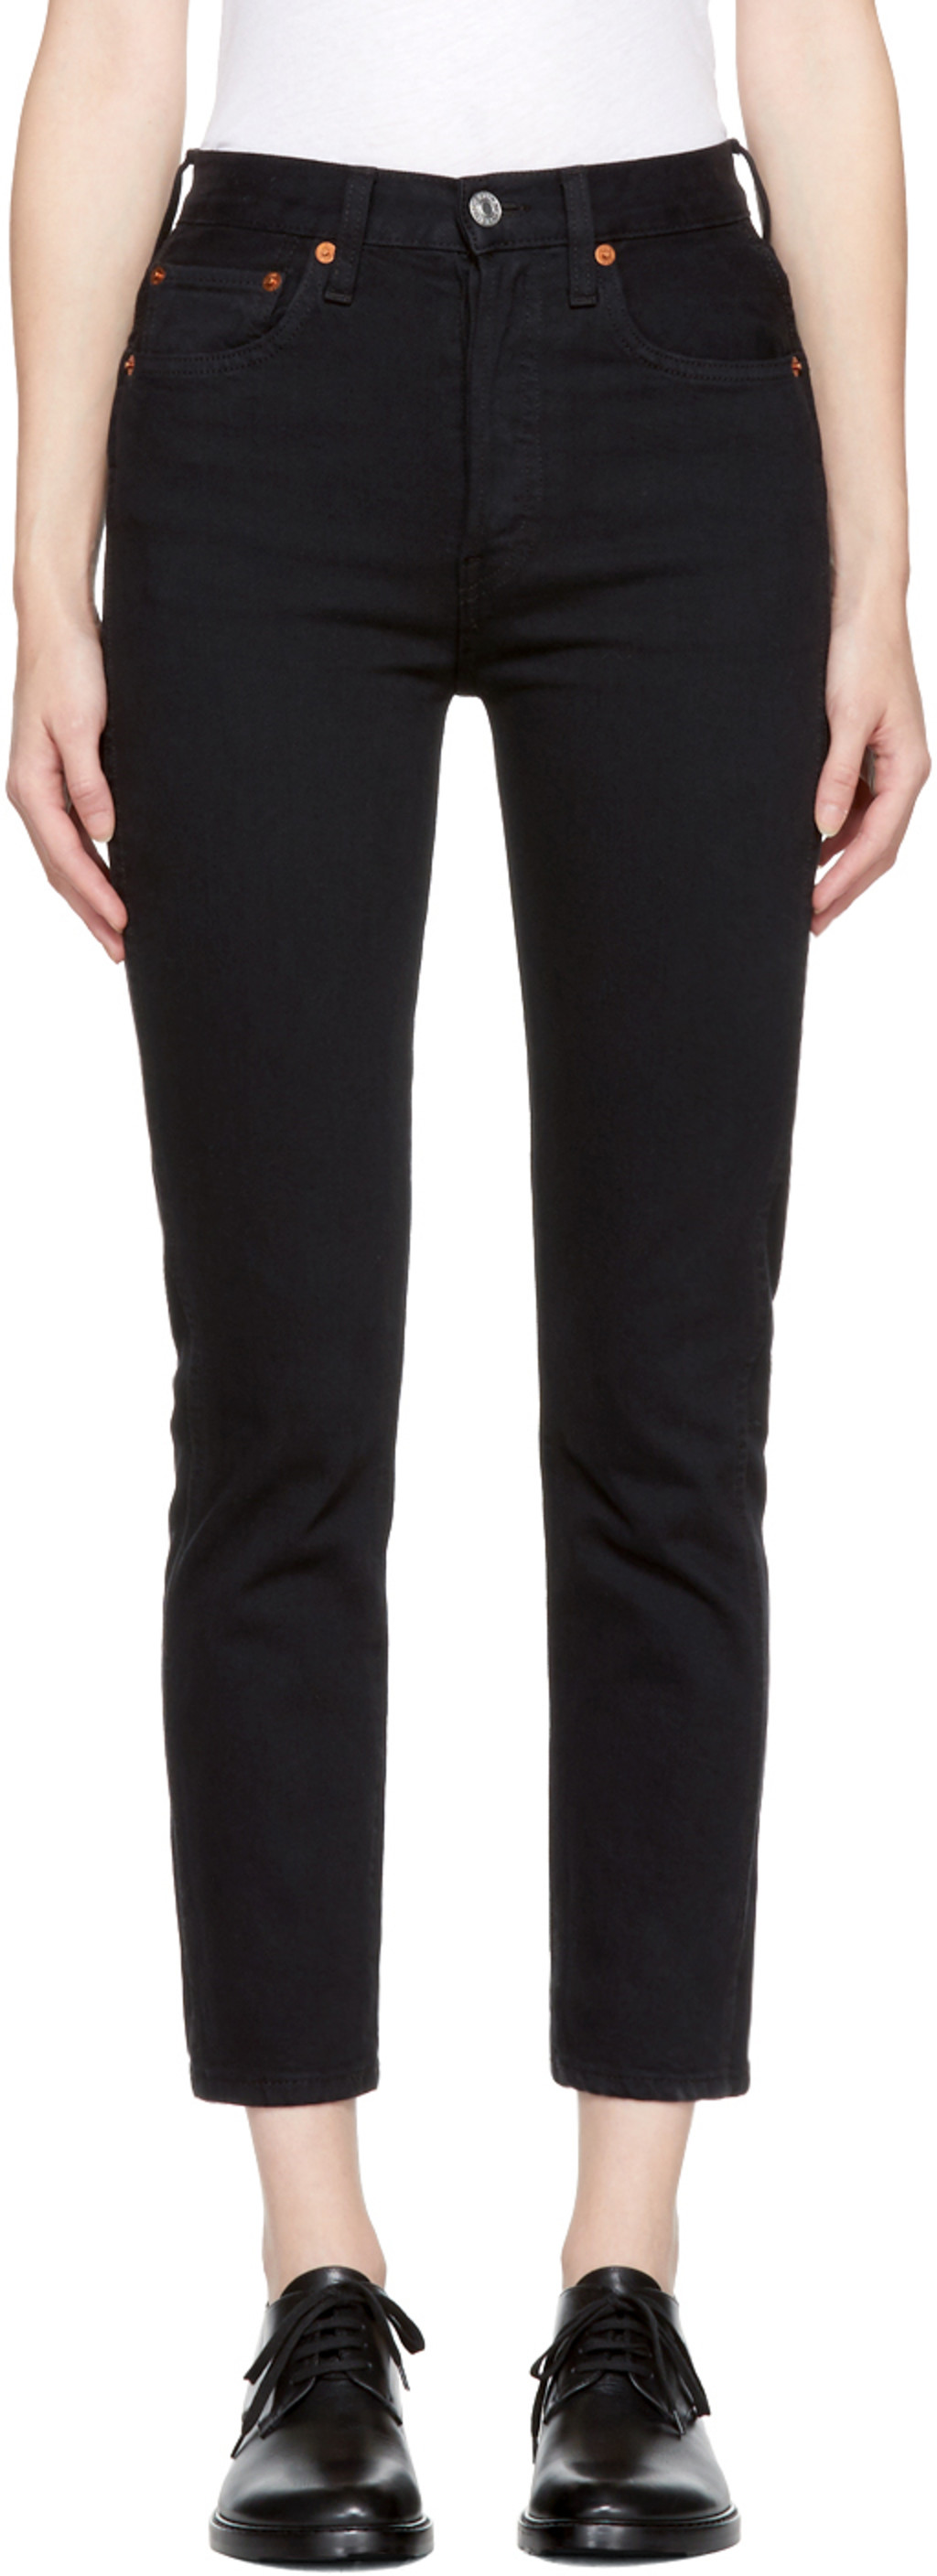 cropped jeans - Black Re/Done